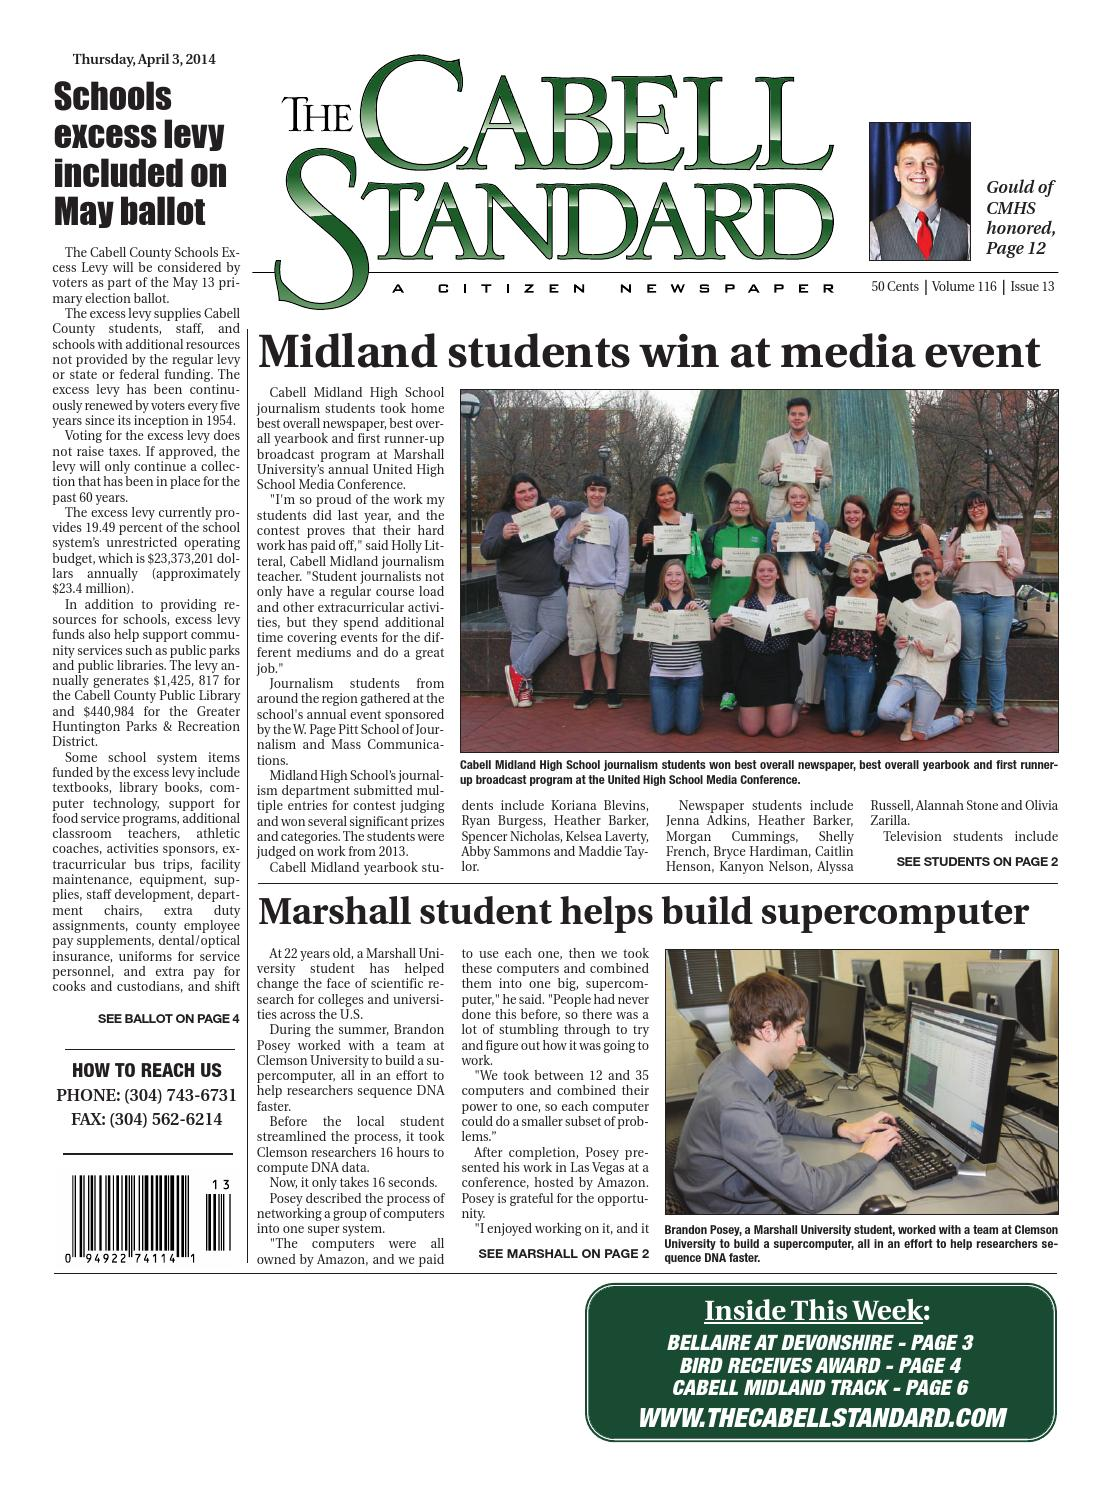 The Cabell Standard, April 3, 2014 by PC Newspapers - issuu